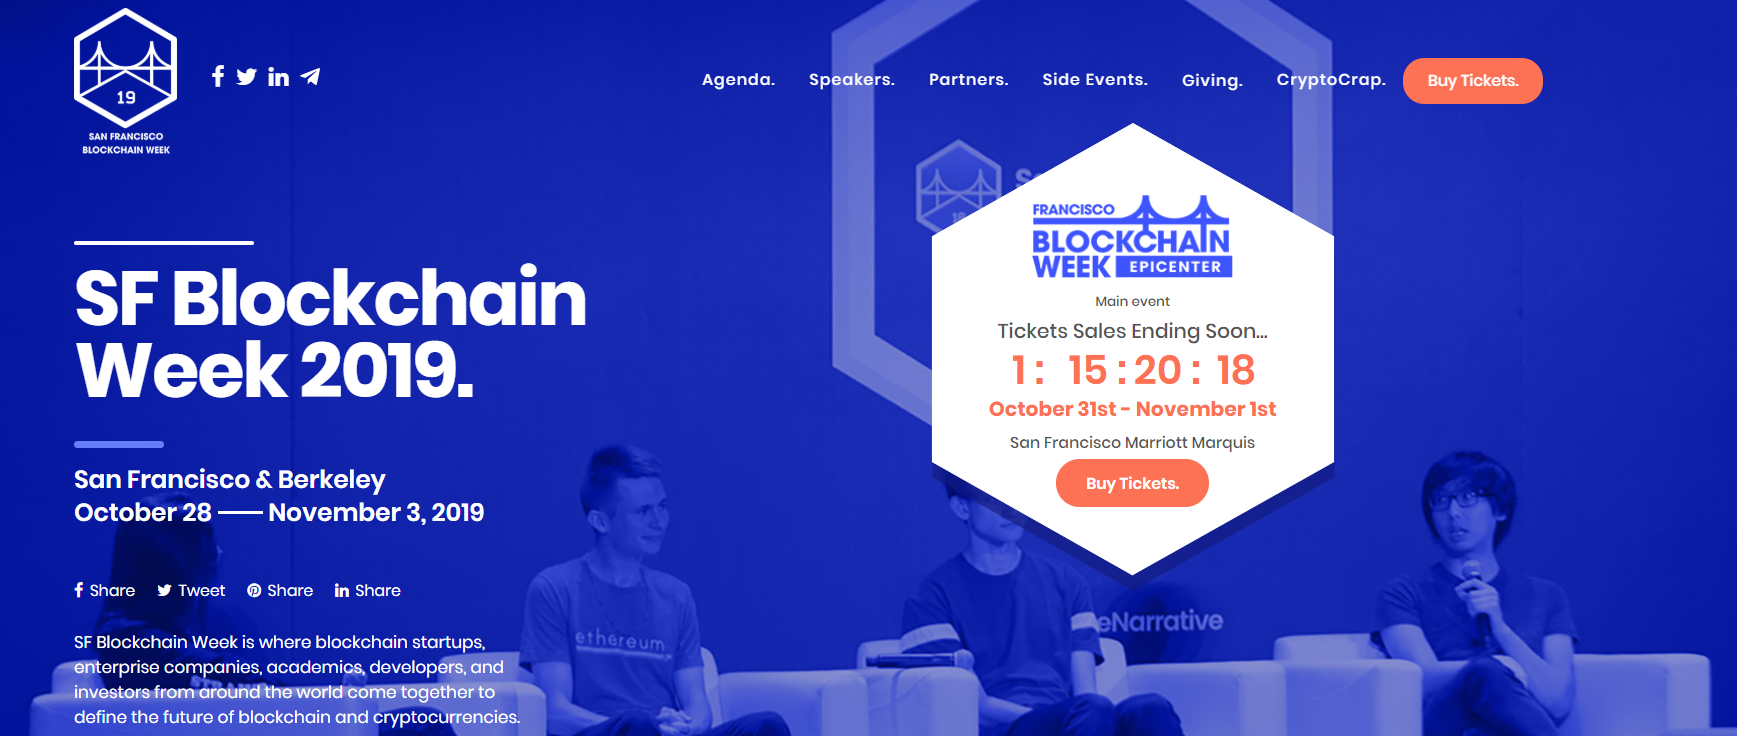 1*HMGv3 Kp8dmiI2Hu1f0SsA - Exciting Crypto Events To Attend This November